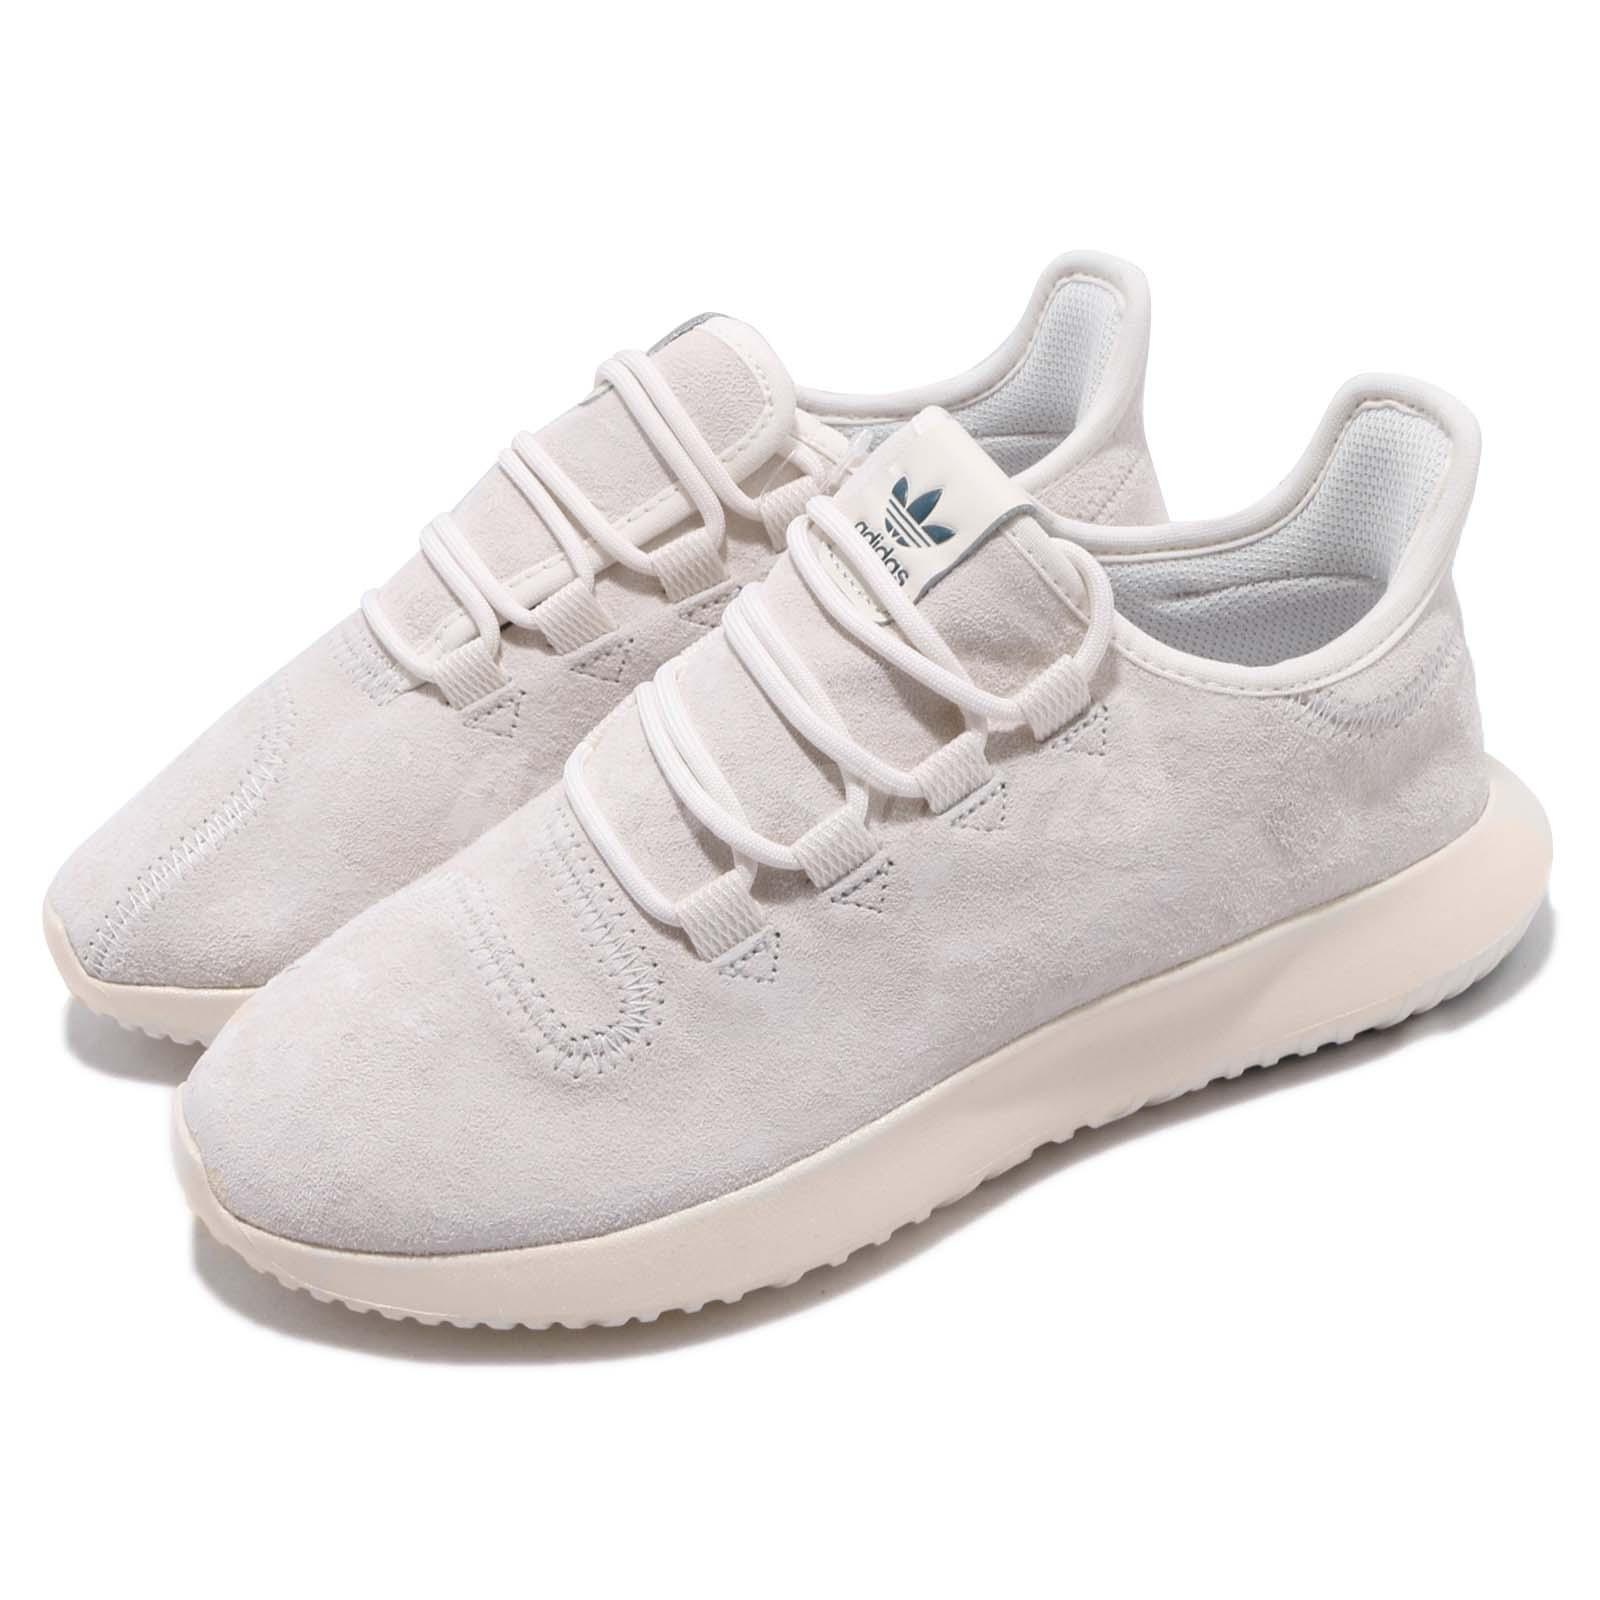 new arrival ece6d 4c7a5 Details about adidas Originals Tubular Shadow W Chalk White Ivory Women  Running Shoes B37762